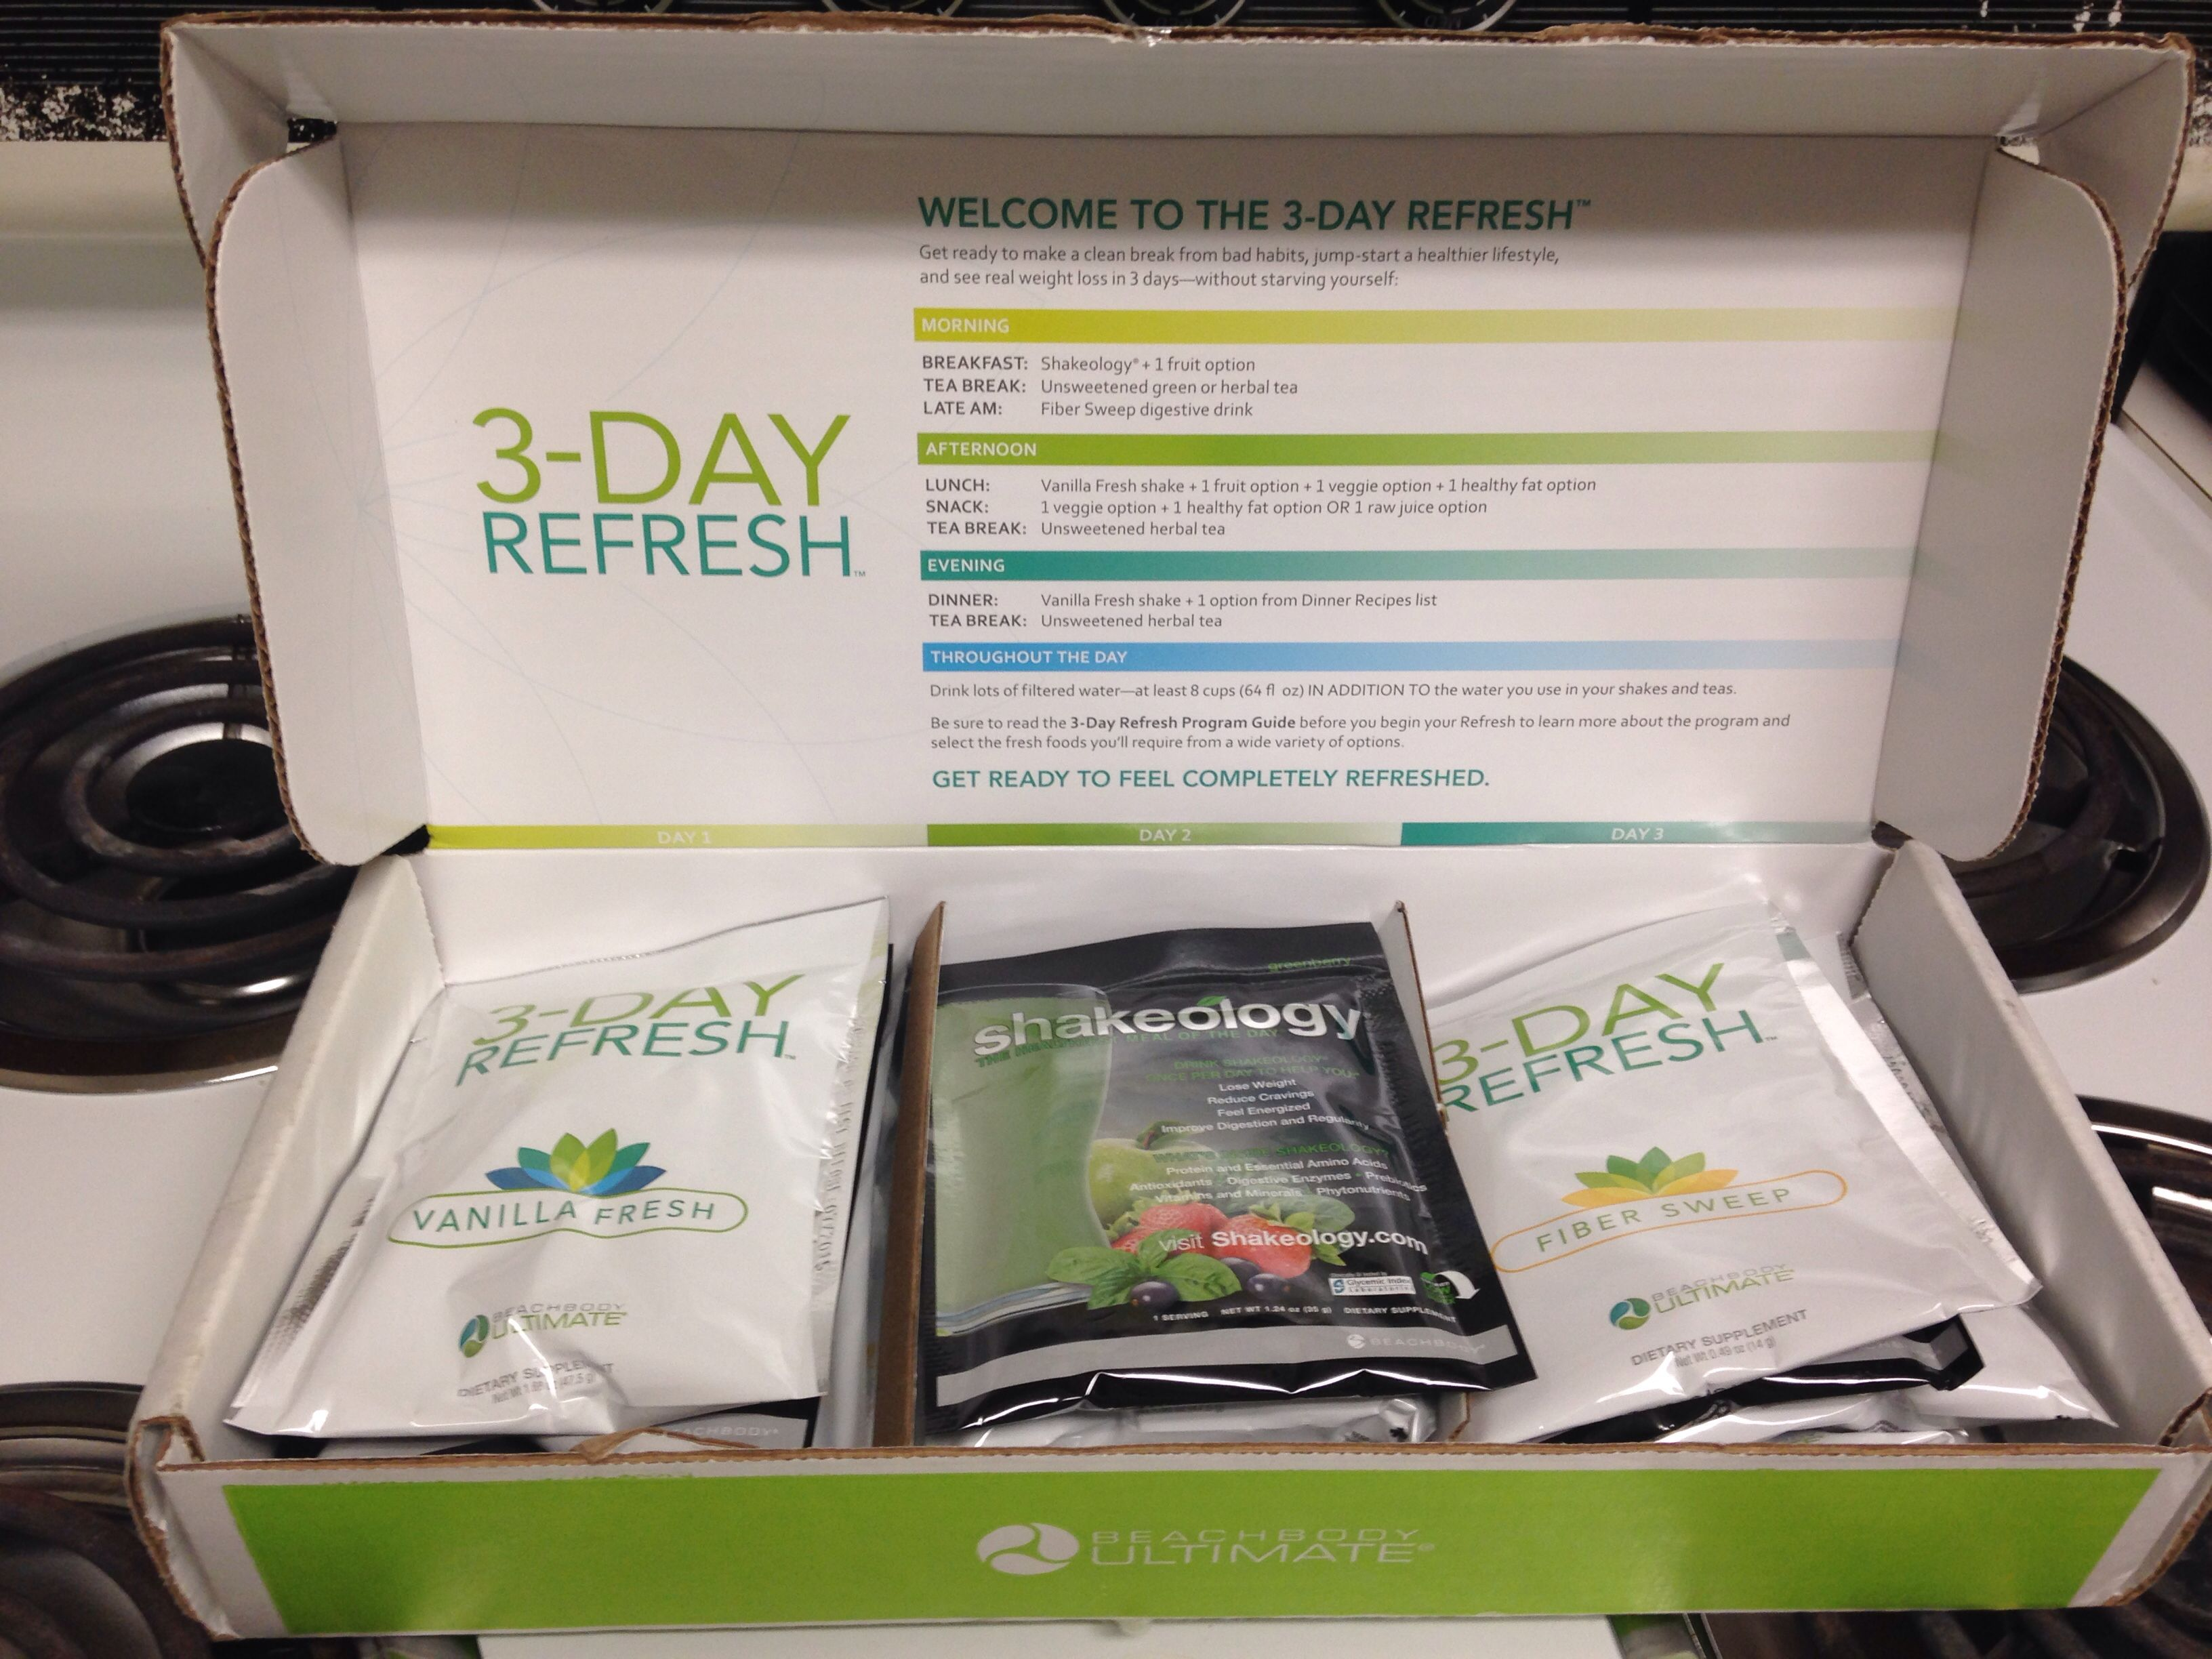 3-Day Refresh with me if you're ready to get back on track and feel great! www.beachbodycoach.com/Khadler